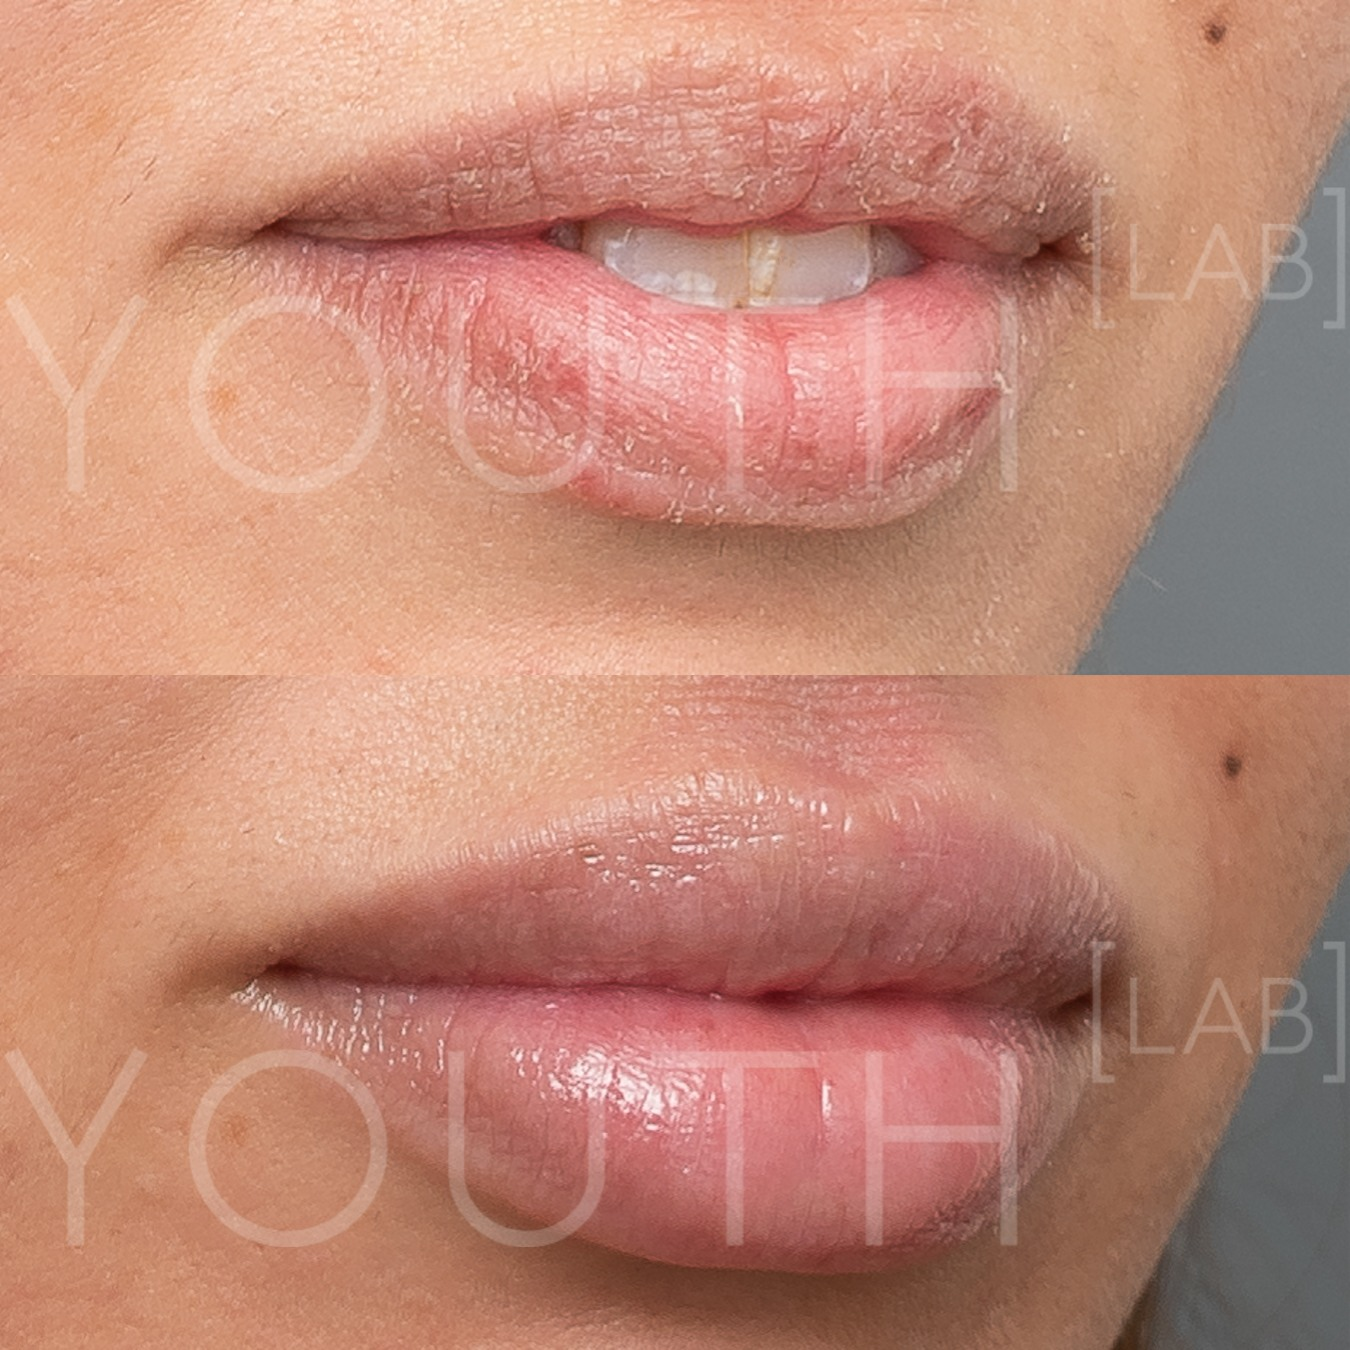 consented - LT - lip filler 1ml 6 weeks post 2.jpg